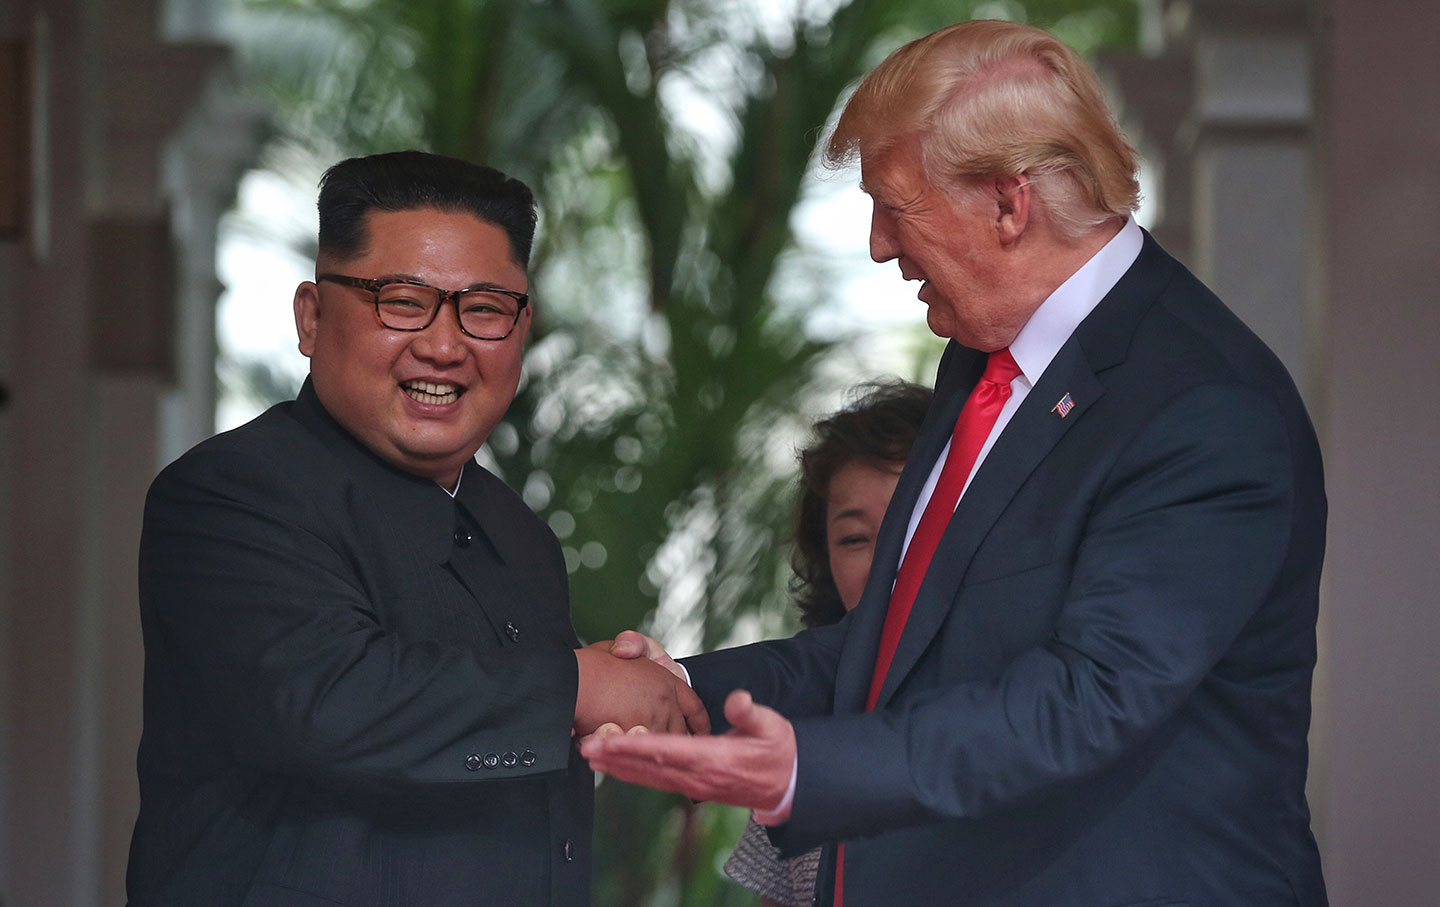 Trump and Kim handshake in Singapore